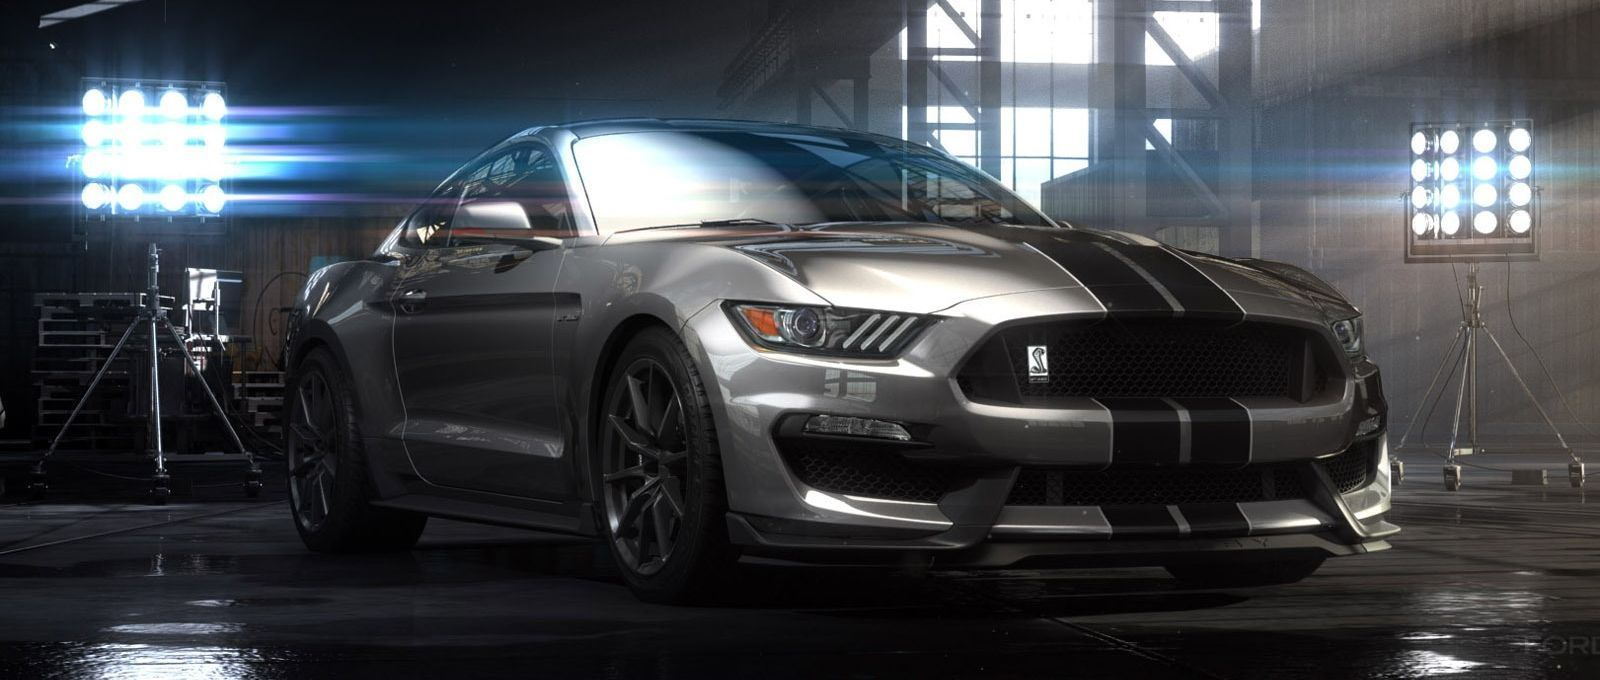 the 2016 ford mustang shelby gt500 is the high performance variation of the 2015 ford mustang - Ford Mustang Gt500 2016